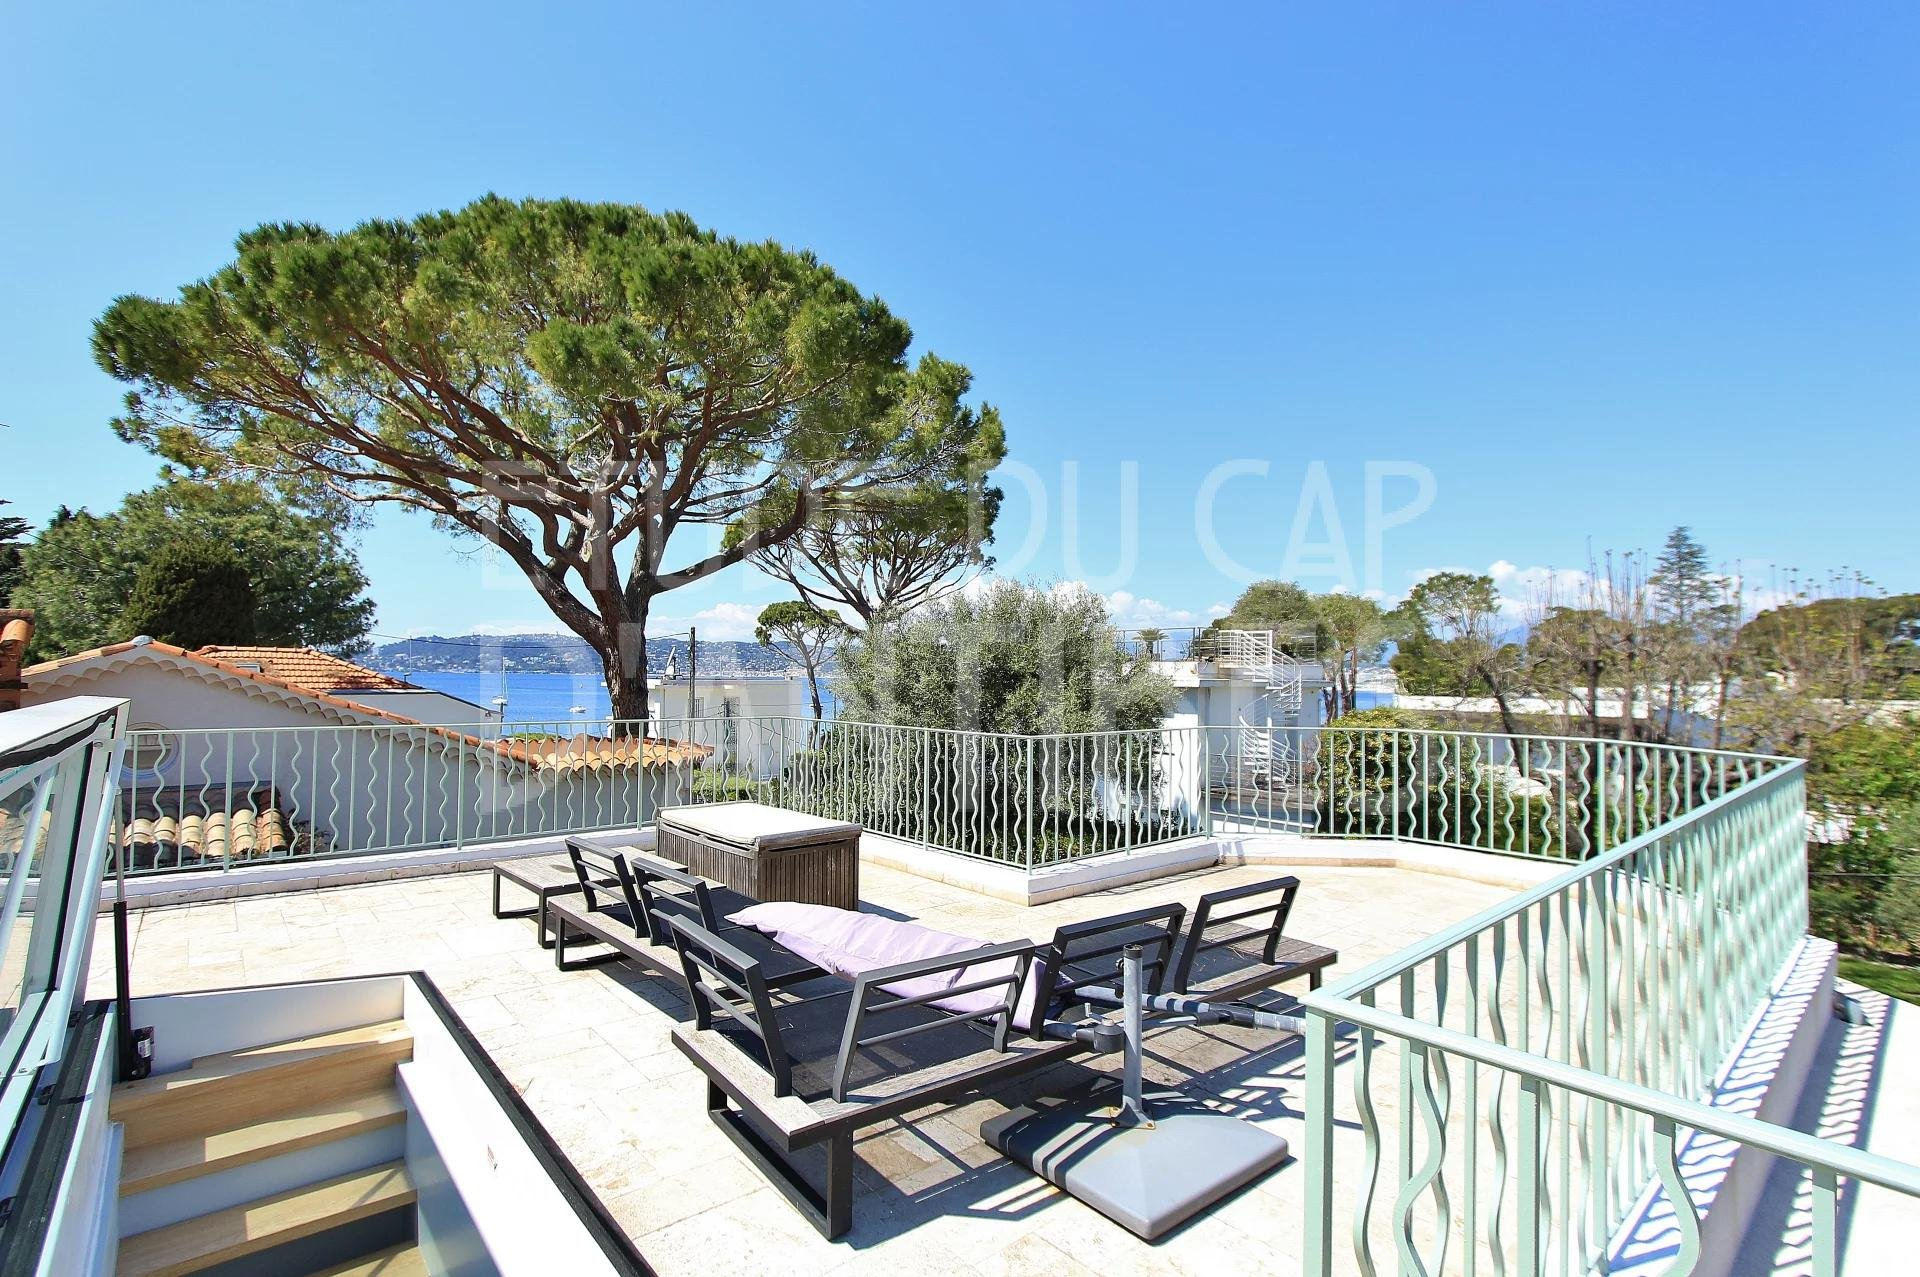 Affitto stagionale Casa - Cap d'Antibes